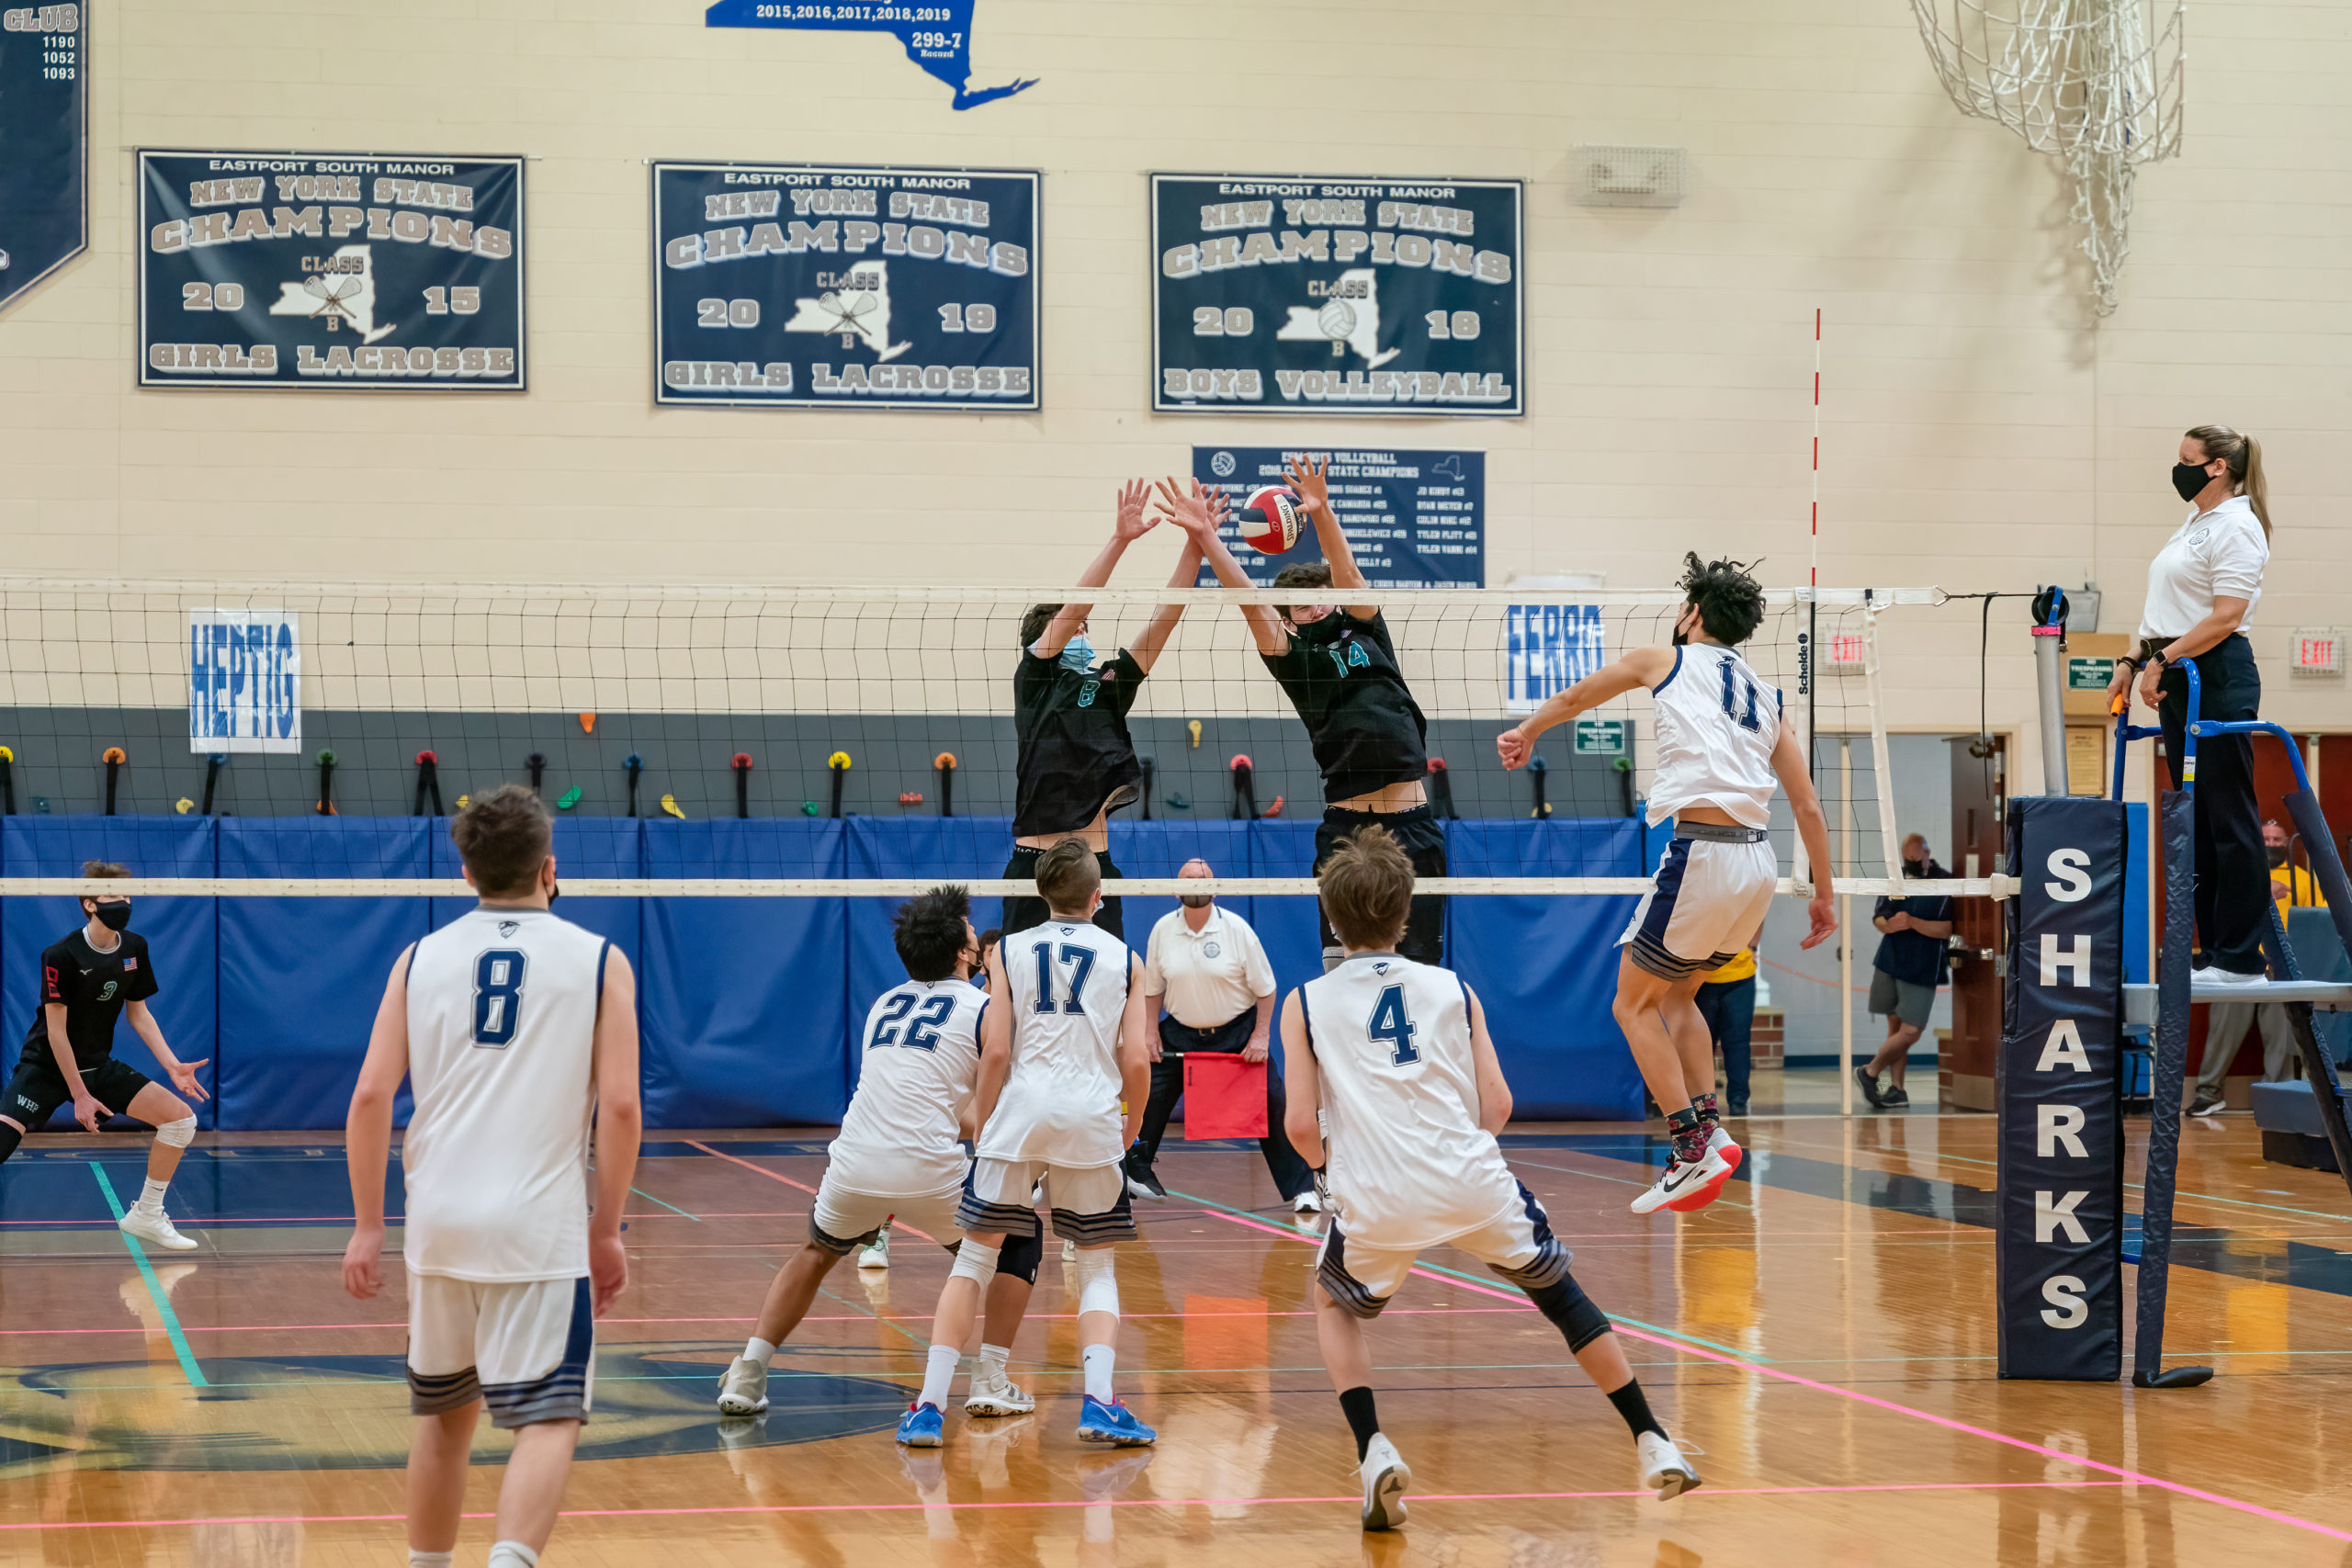 Hurricanes Colbie Mason, left, and Daniel Haber set up a block at the net.